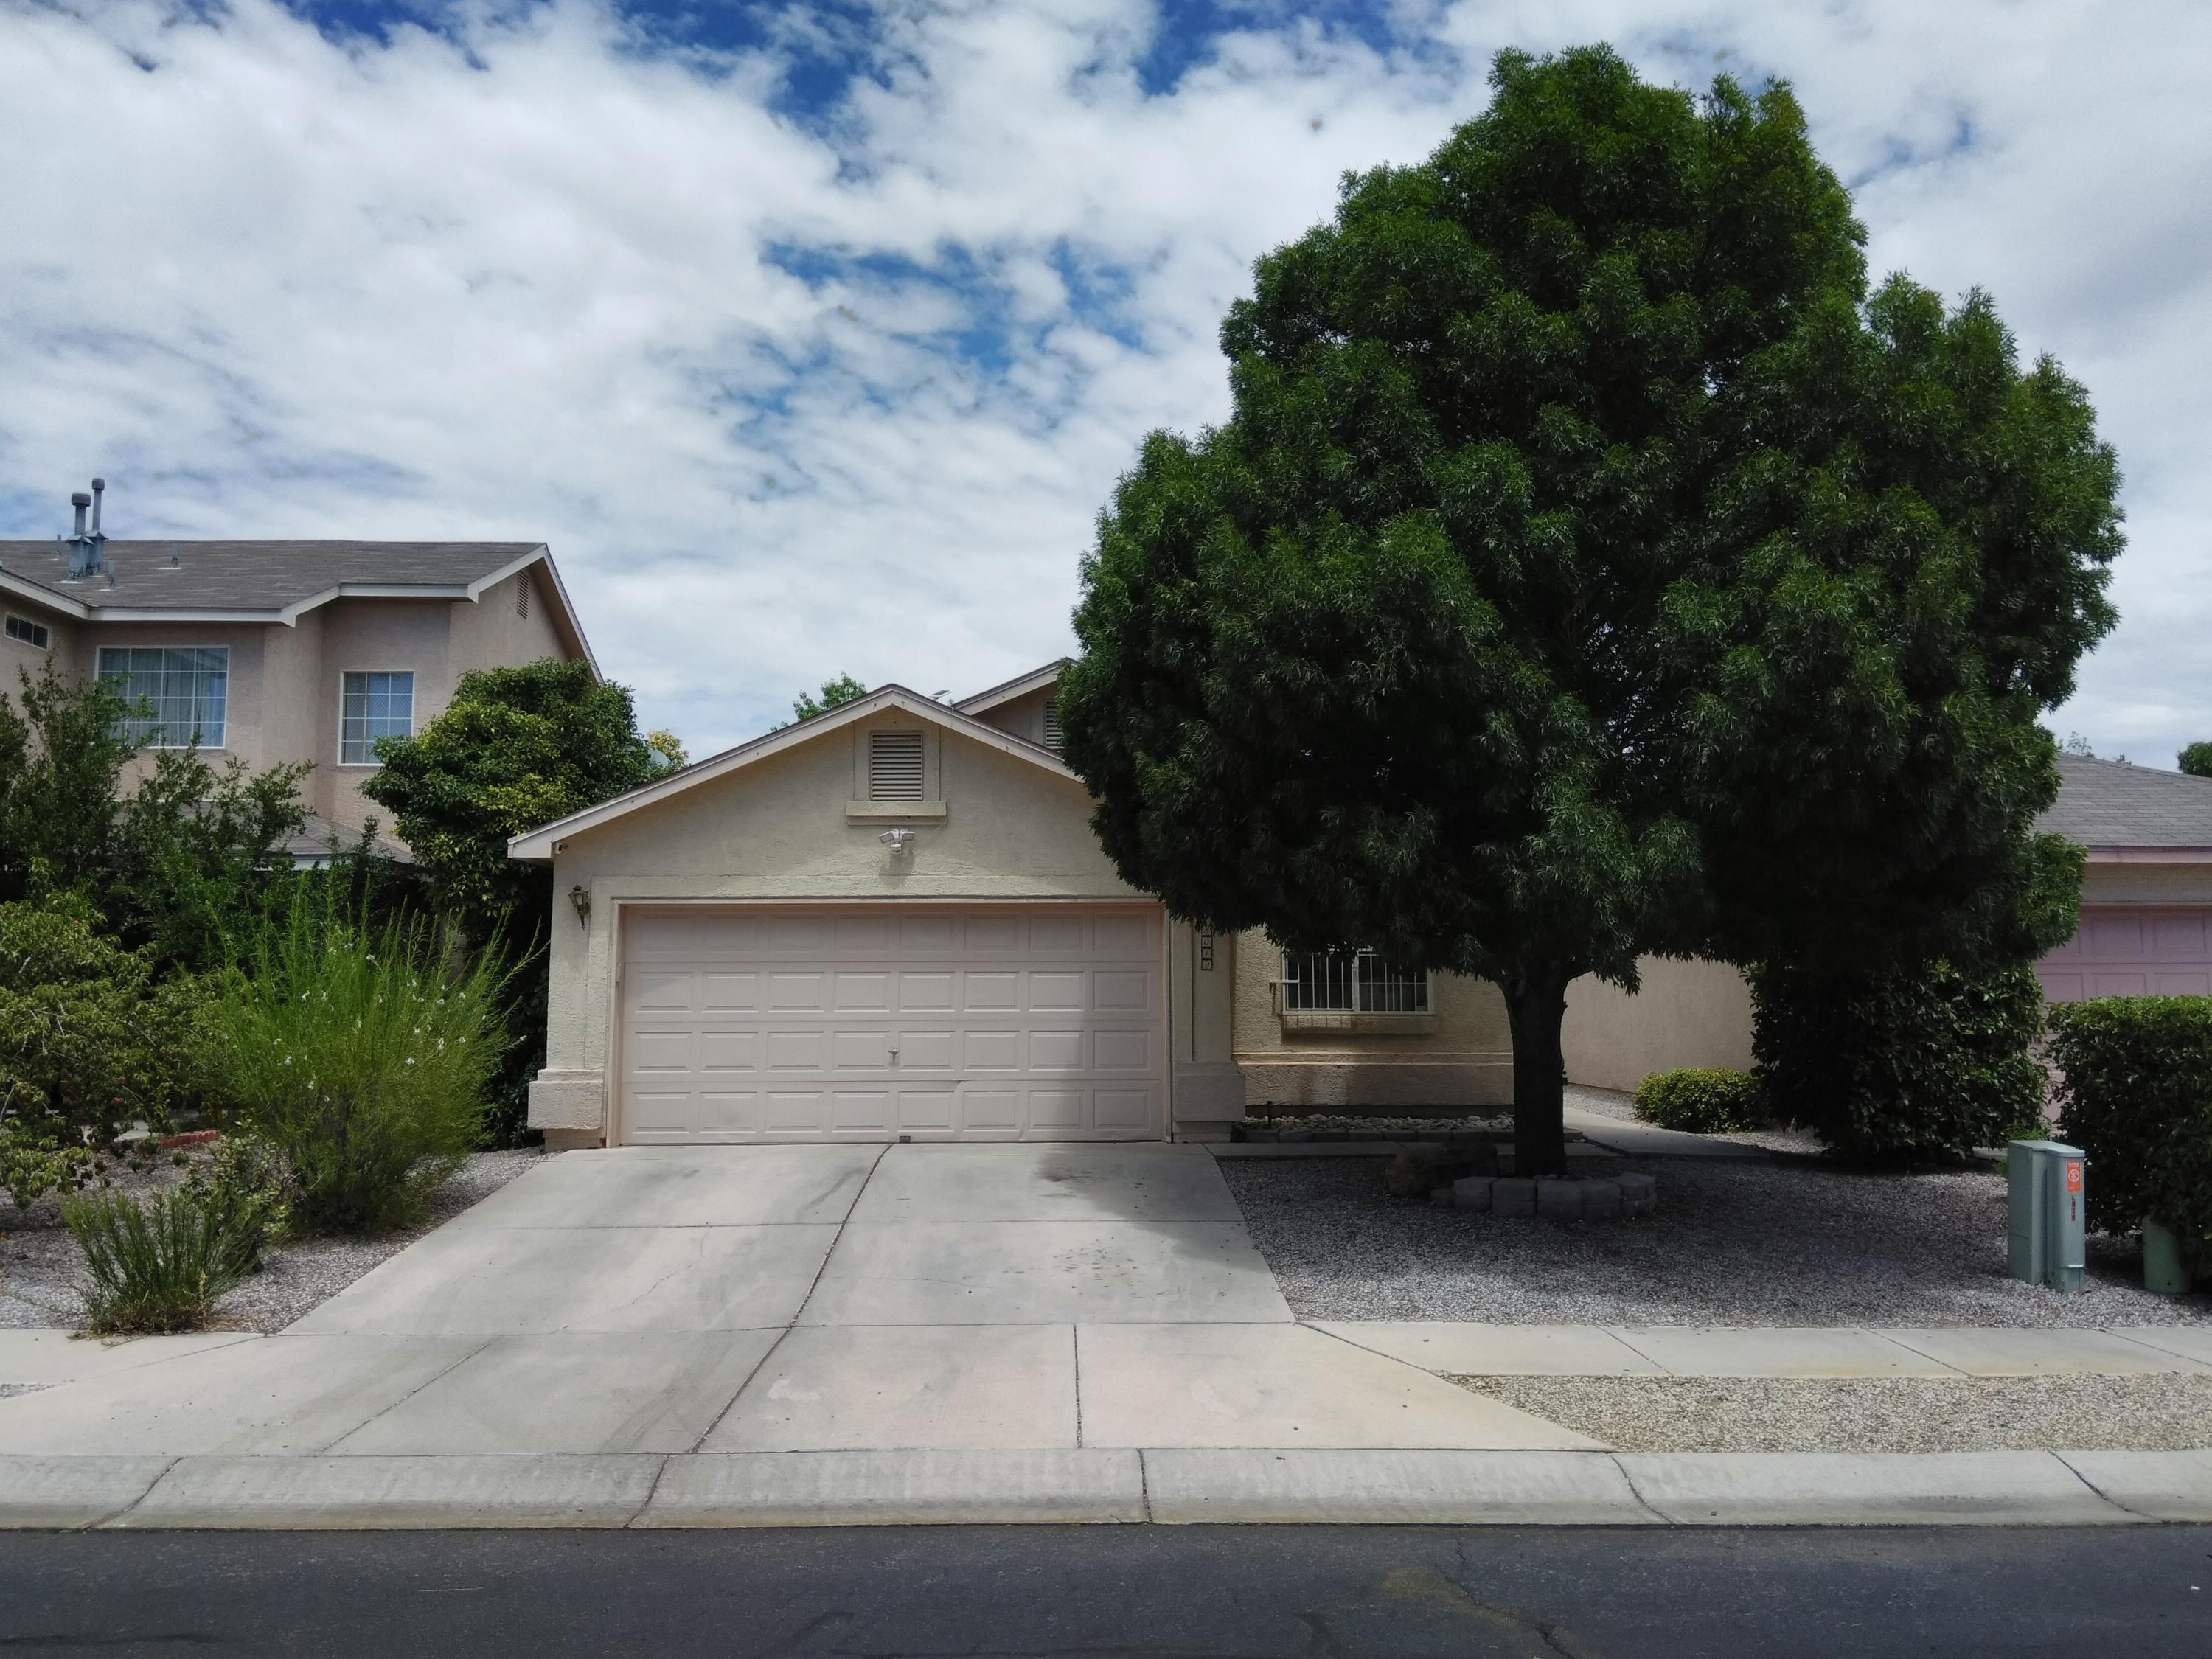 This home has incredible features! Custom entertainment in the living room selling with sound system! Raised ceilings and wrought iron security bars over windows and backdoor. Cement, Grass, Sprinklers, Shed, Tree, and Sun Sail Shade are great additions to the backyard! Beautiful large tile, wood floors, updated fixtures, water heater replaced in 2019, master cooler keeps summer cool! Great features ready to enjoy along with being a part of a gated community with security!